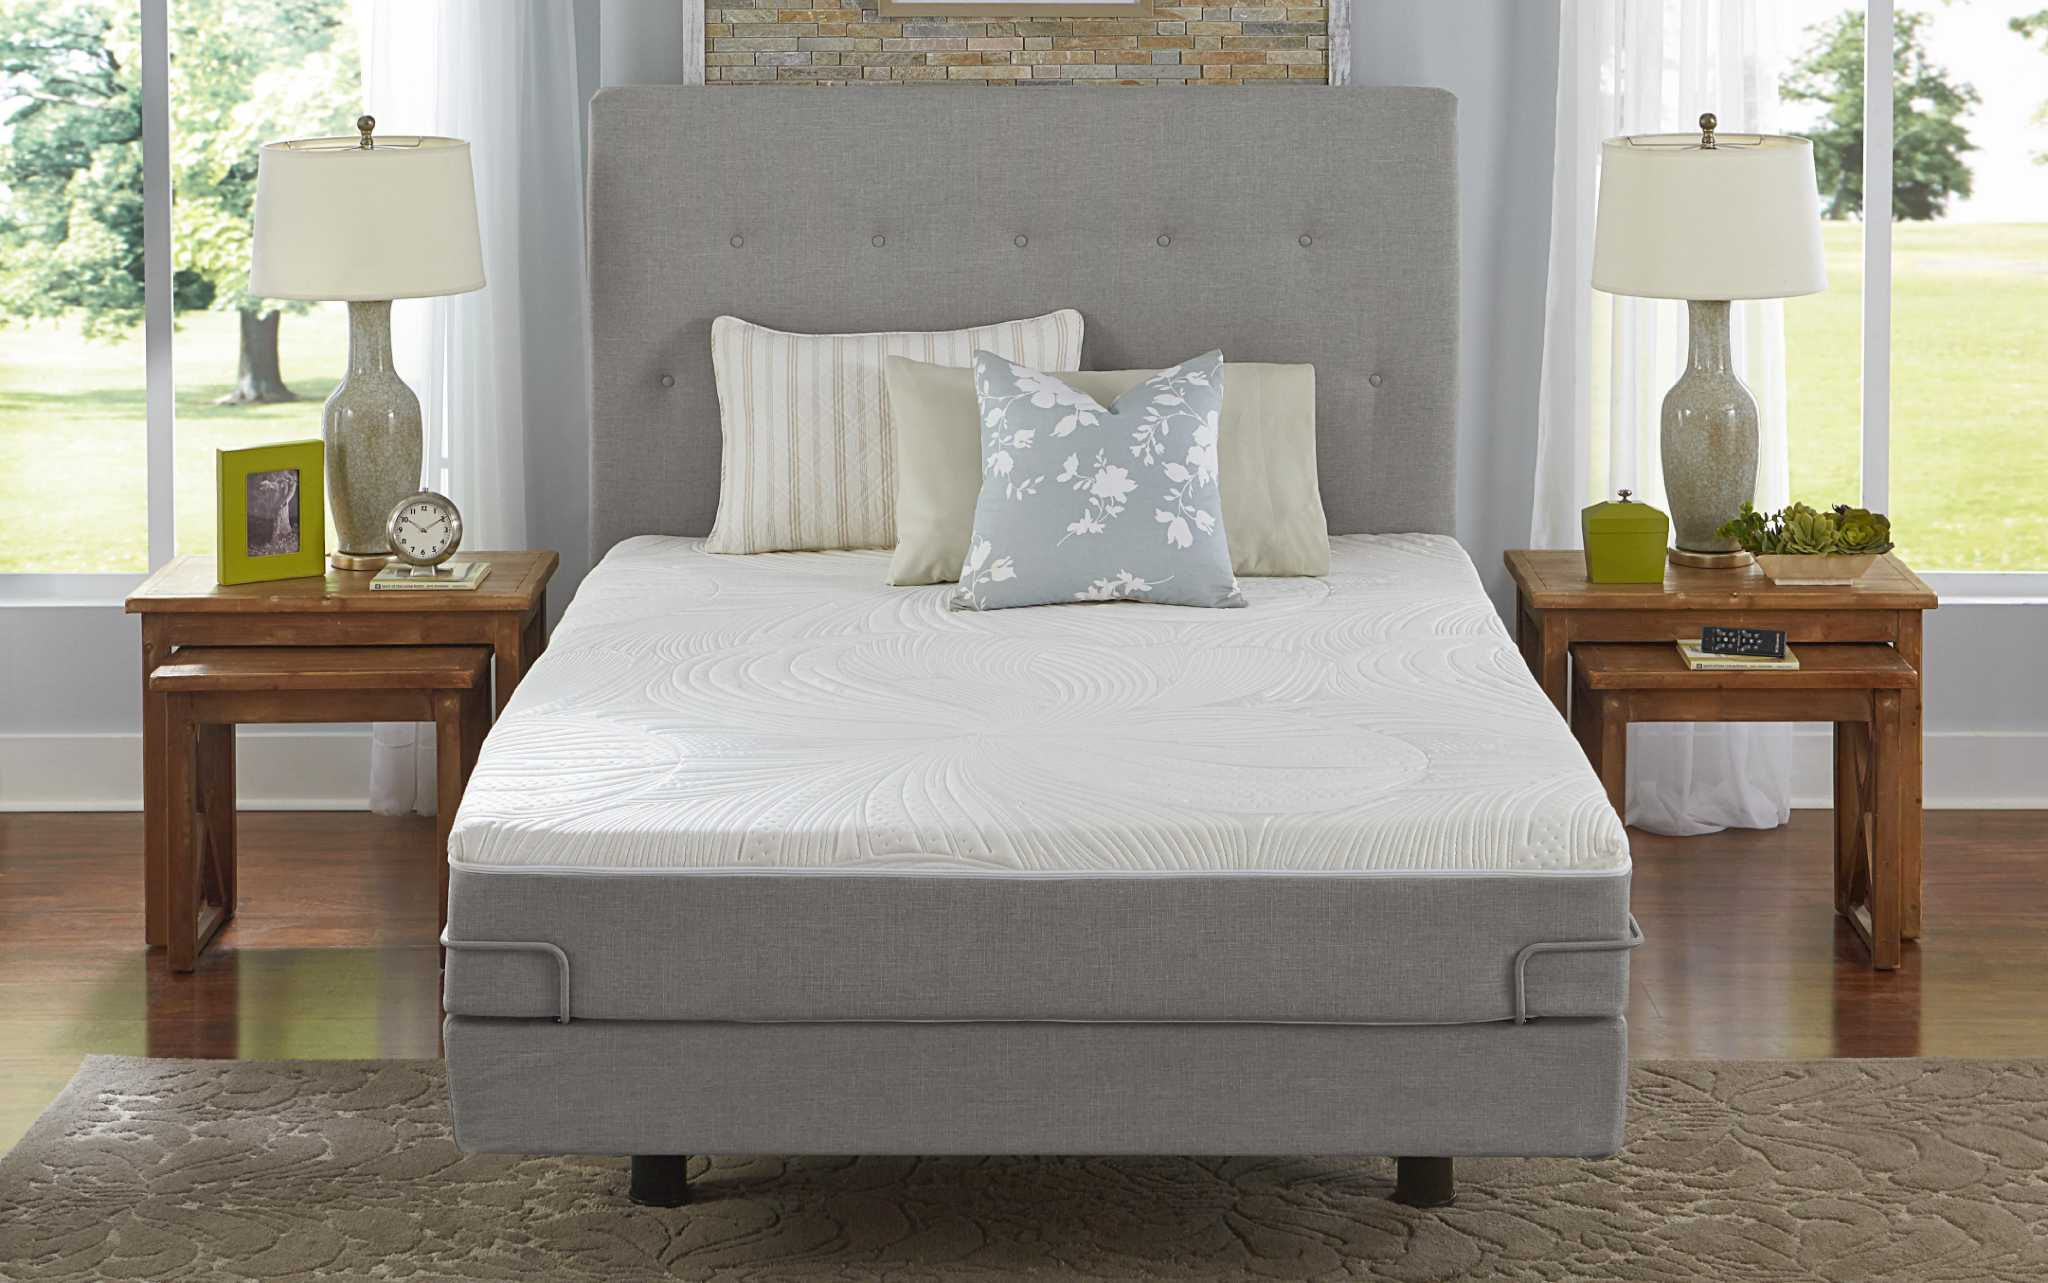 on mattress go live bugs pillow foam mattresses sale in bed do like memory when